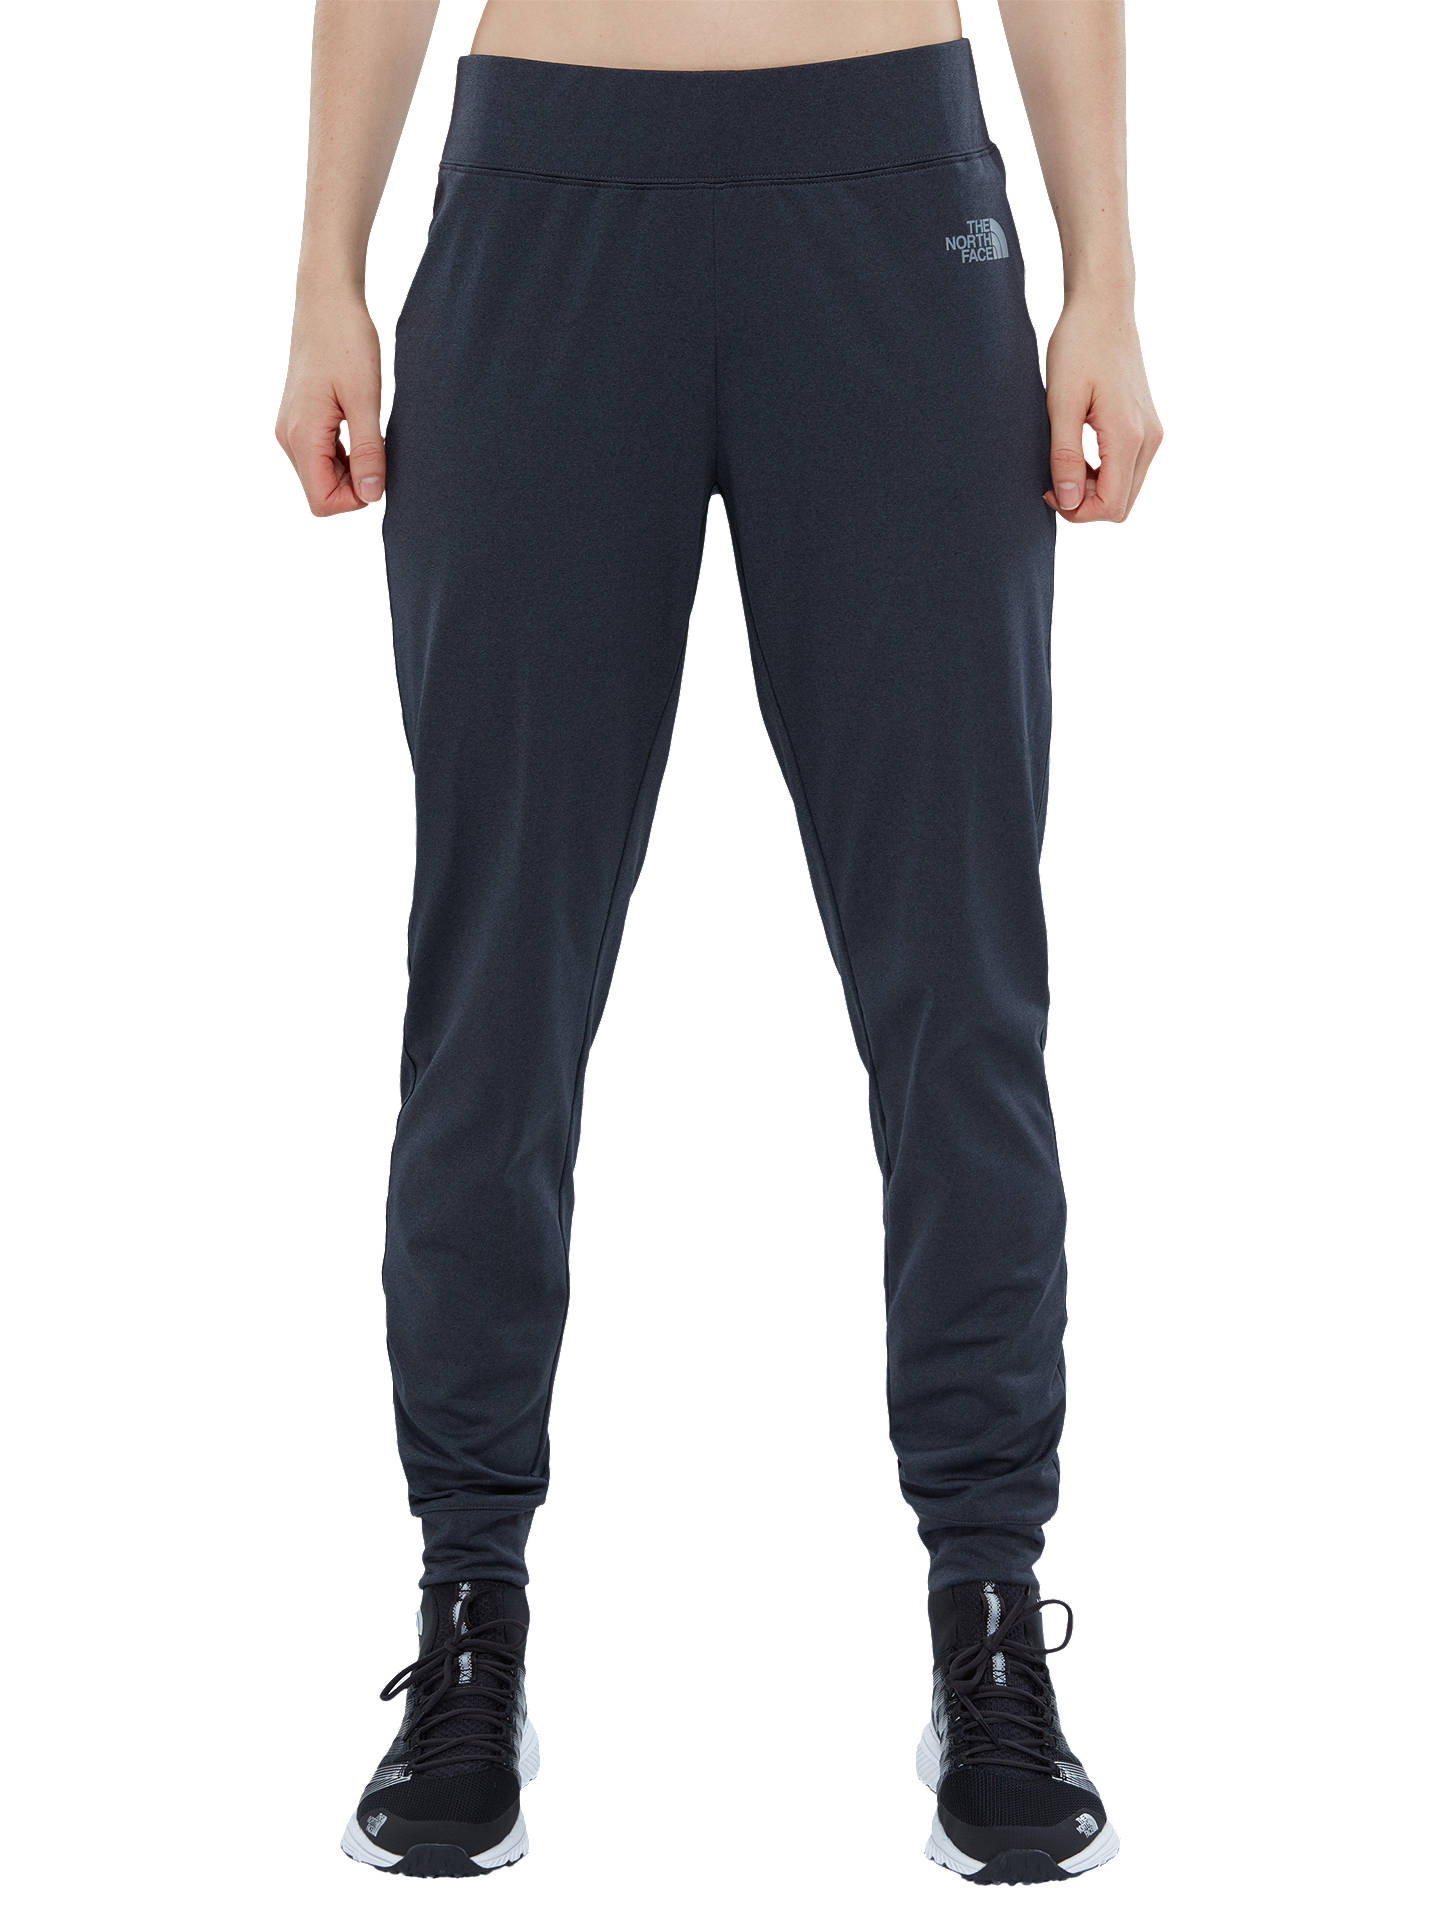 Buy The North Face Lite Stretch Women's Sweat Pants, Grey, S Online at johnlewis.com